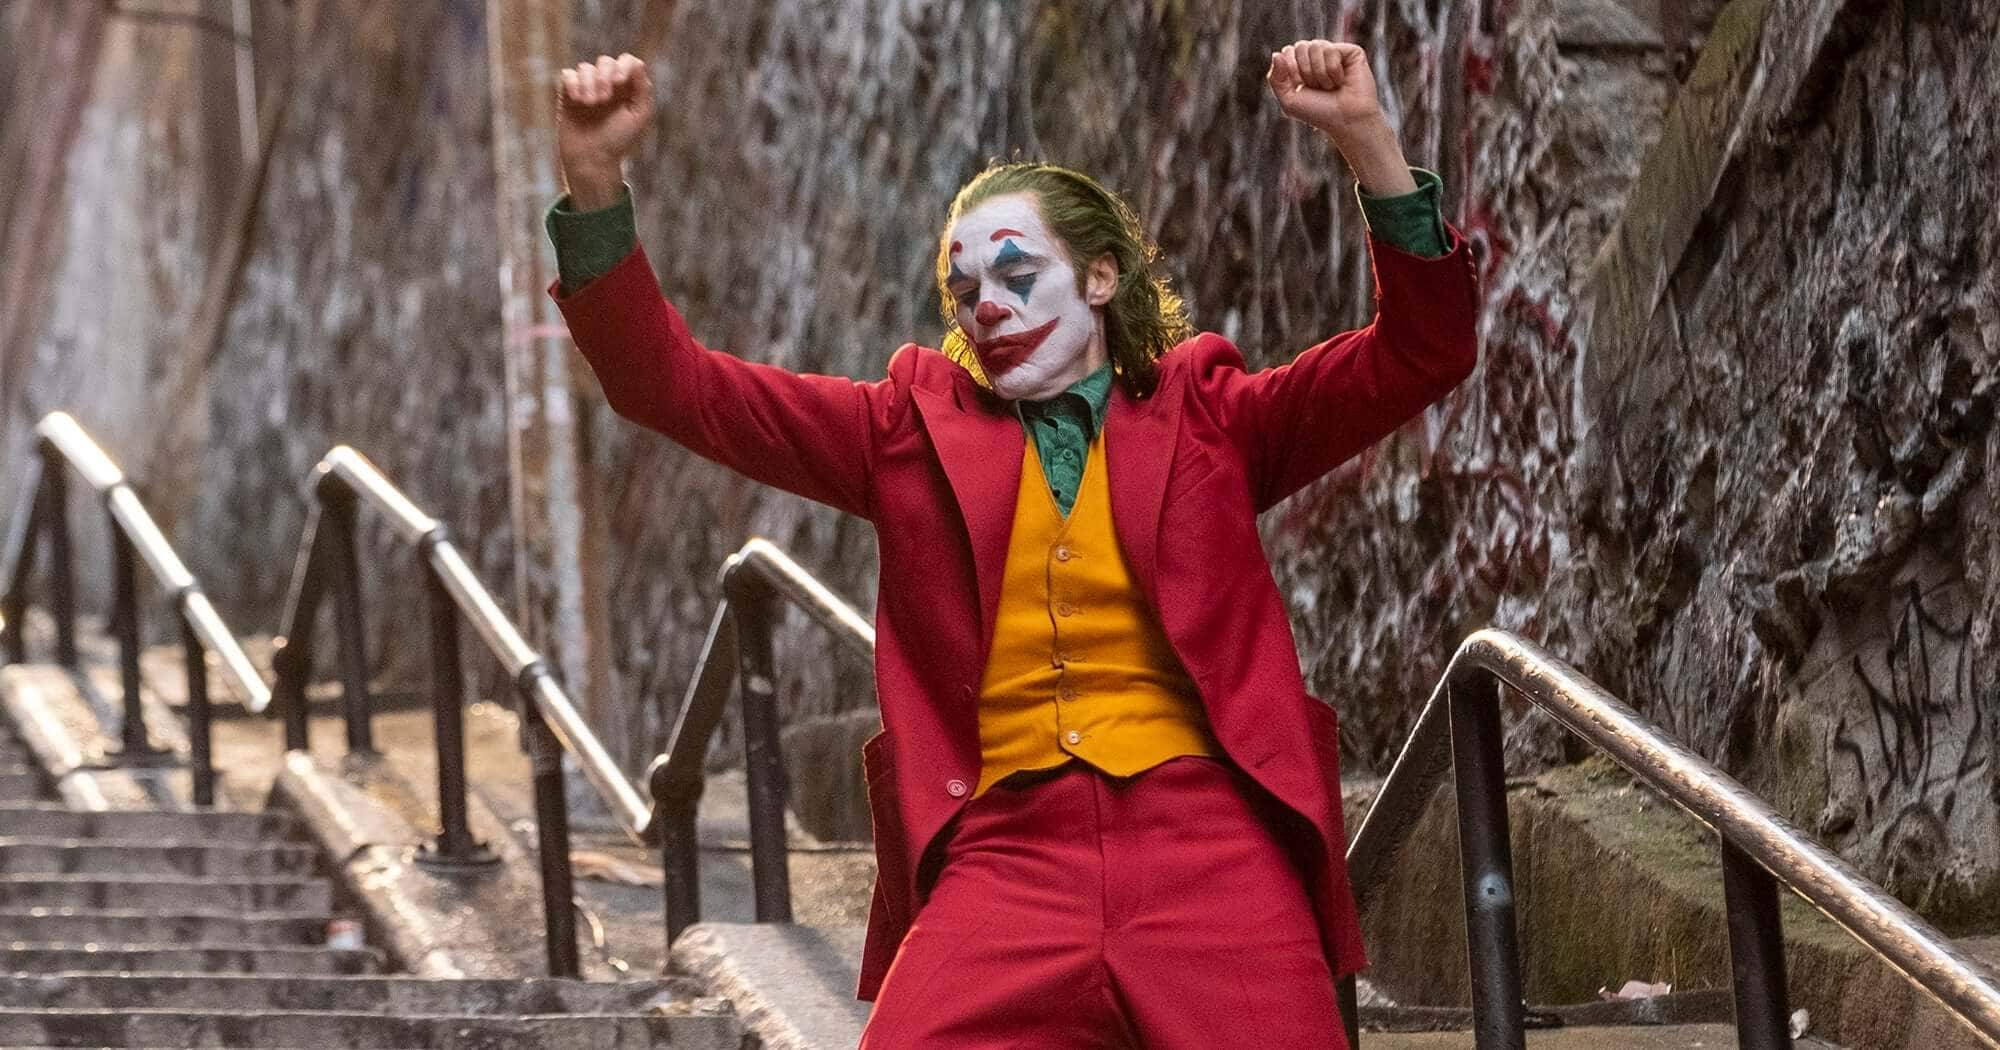 Joker Dancing at $1 billion